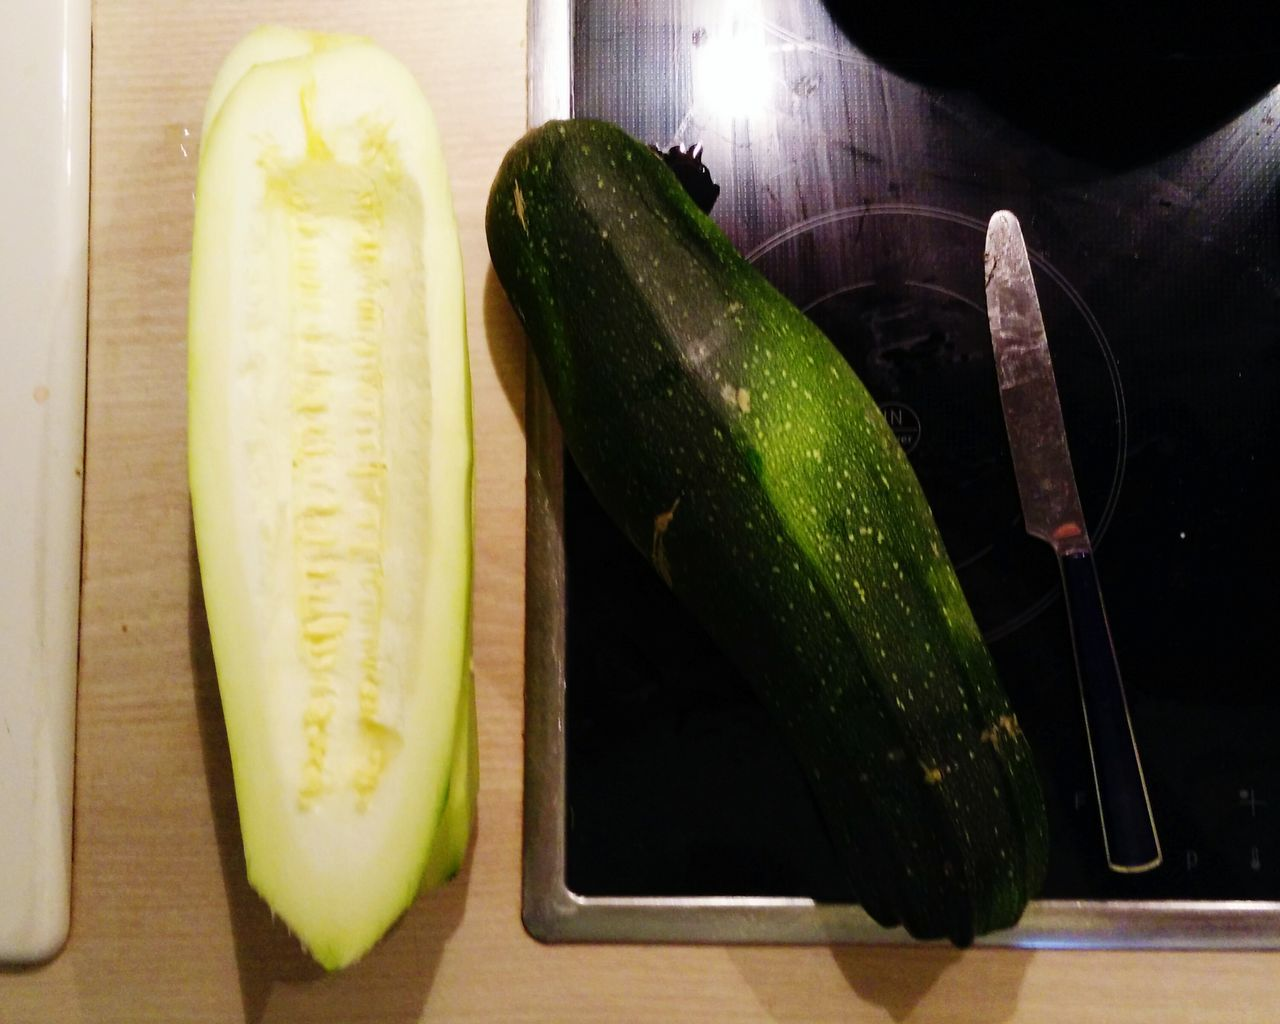 My Mom's Zucchini is Bigger than yours. Bigger Than You Think Freshness Food And Drink Green Color Zucchini Plant